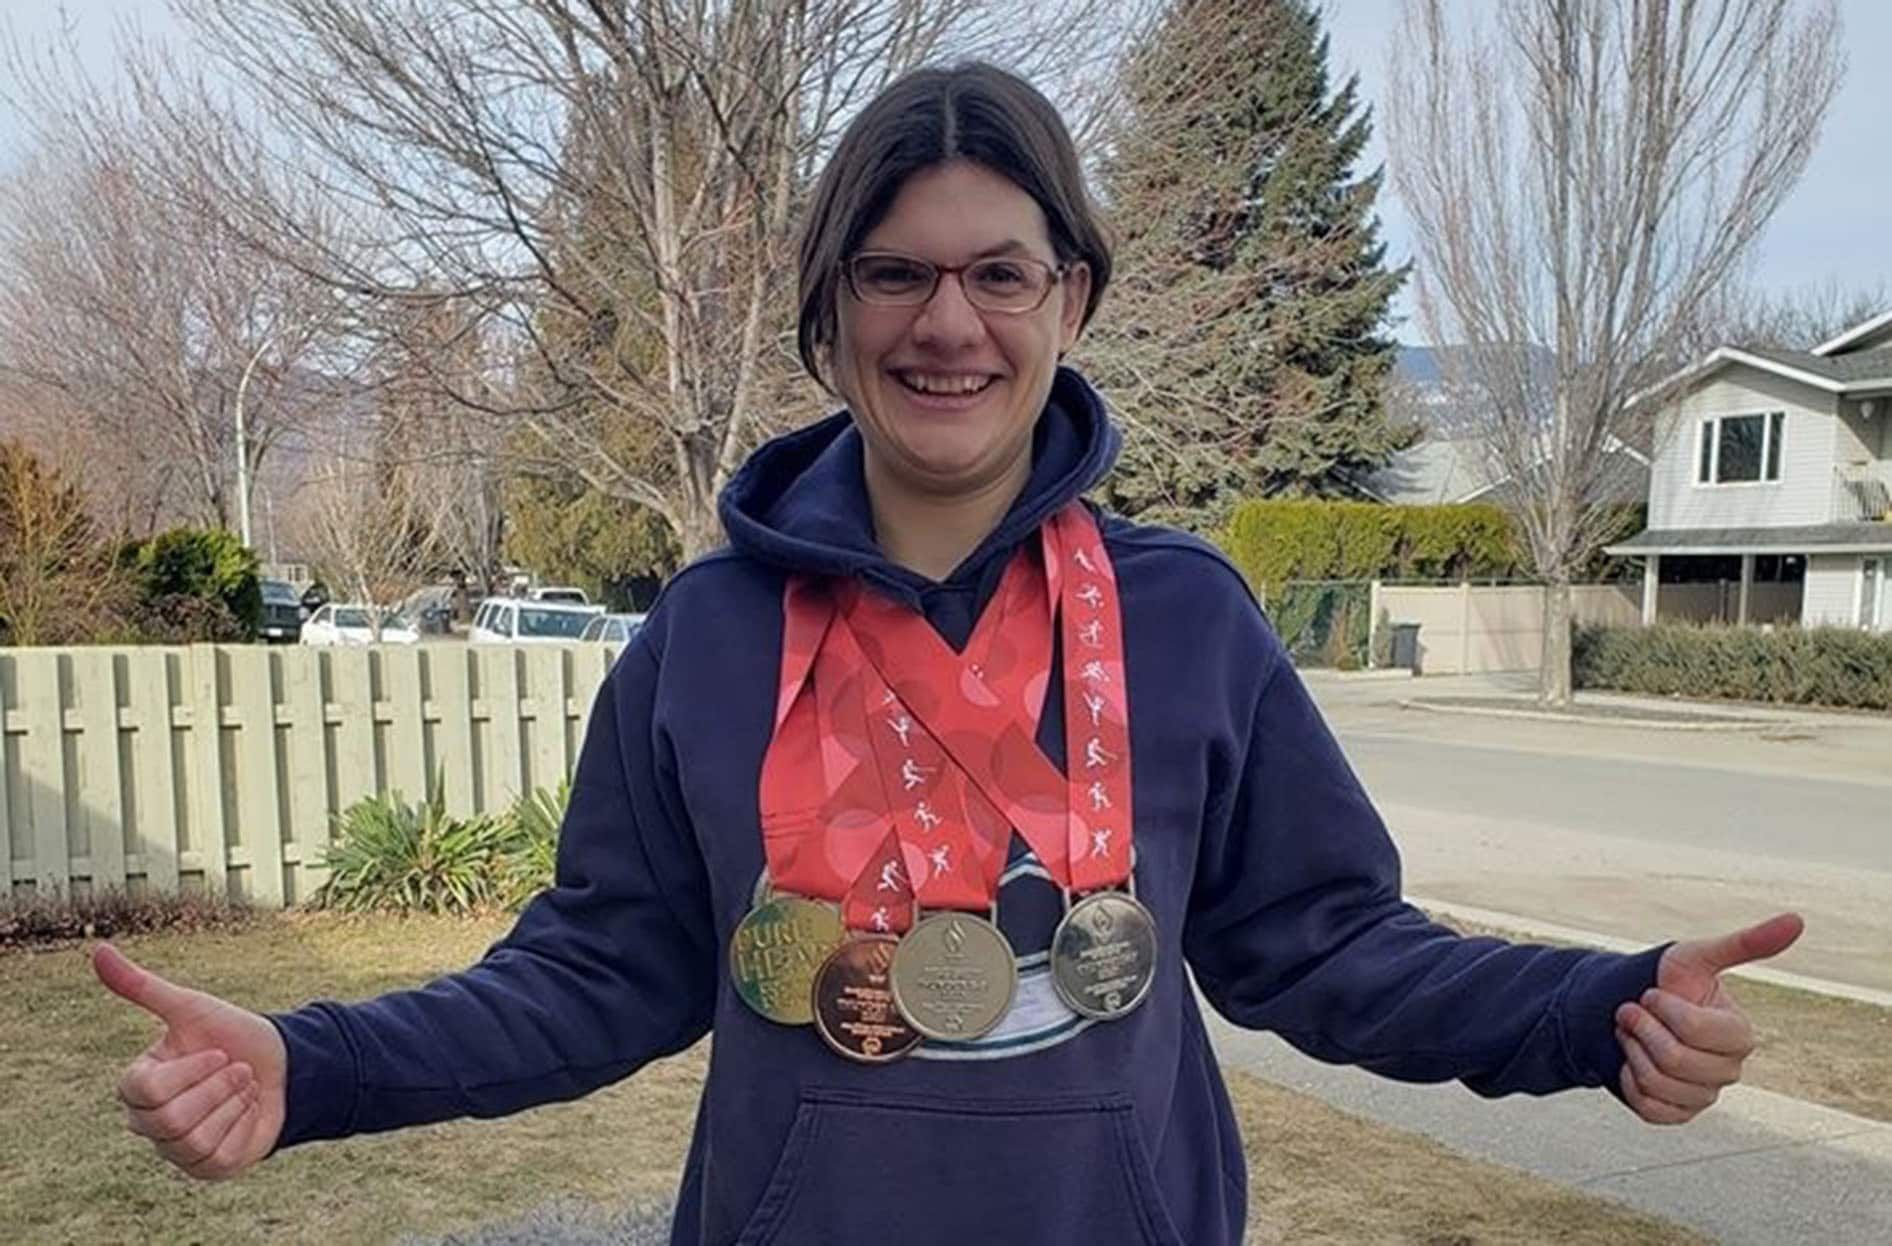 Kelsey stands outside with her thumbs up as she smiles with her medals around her neck